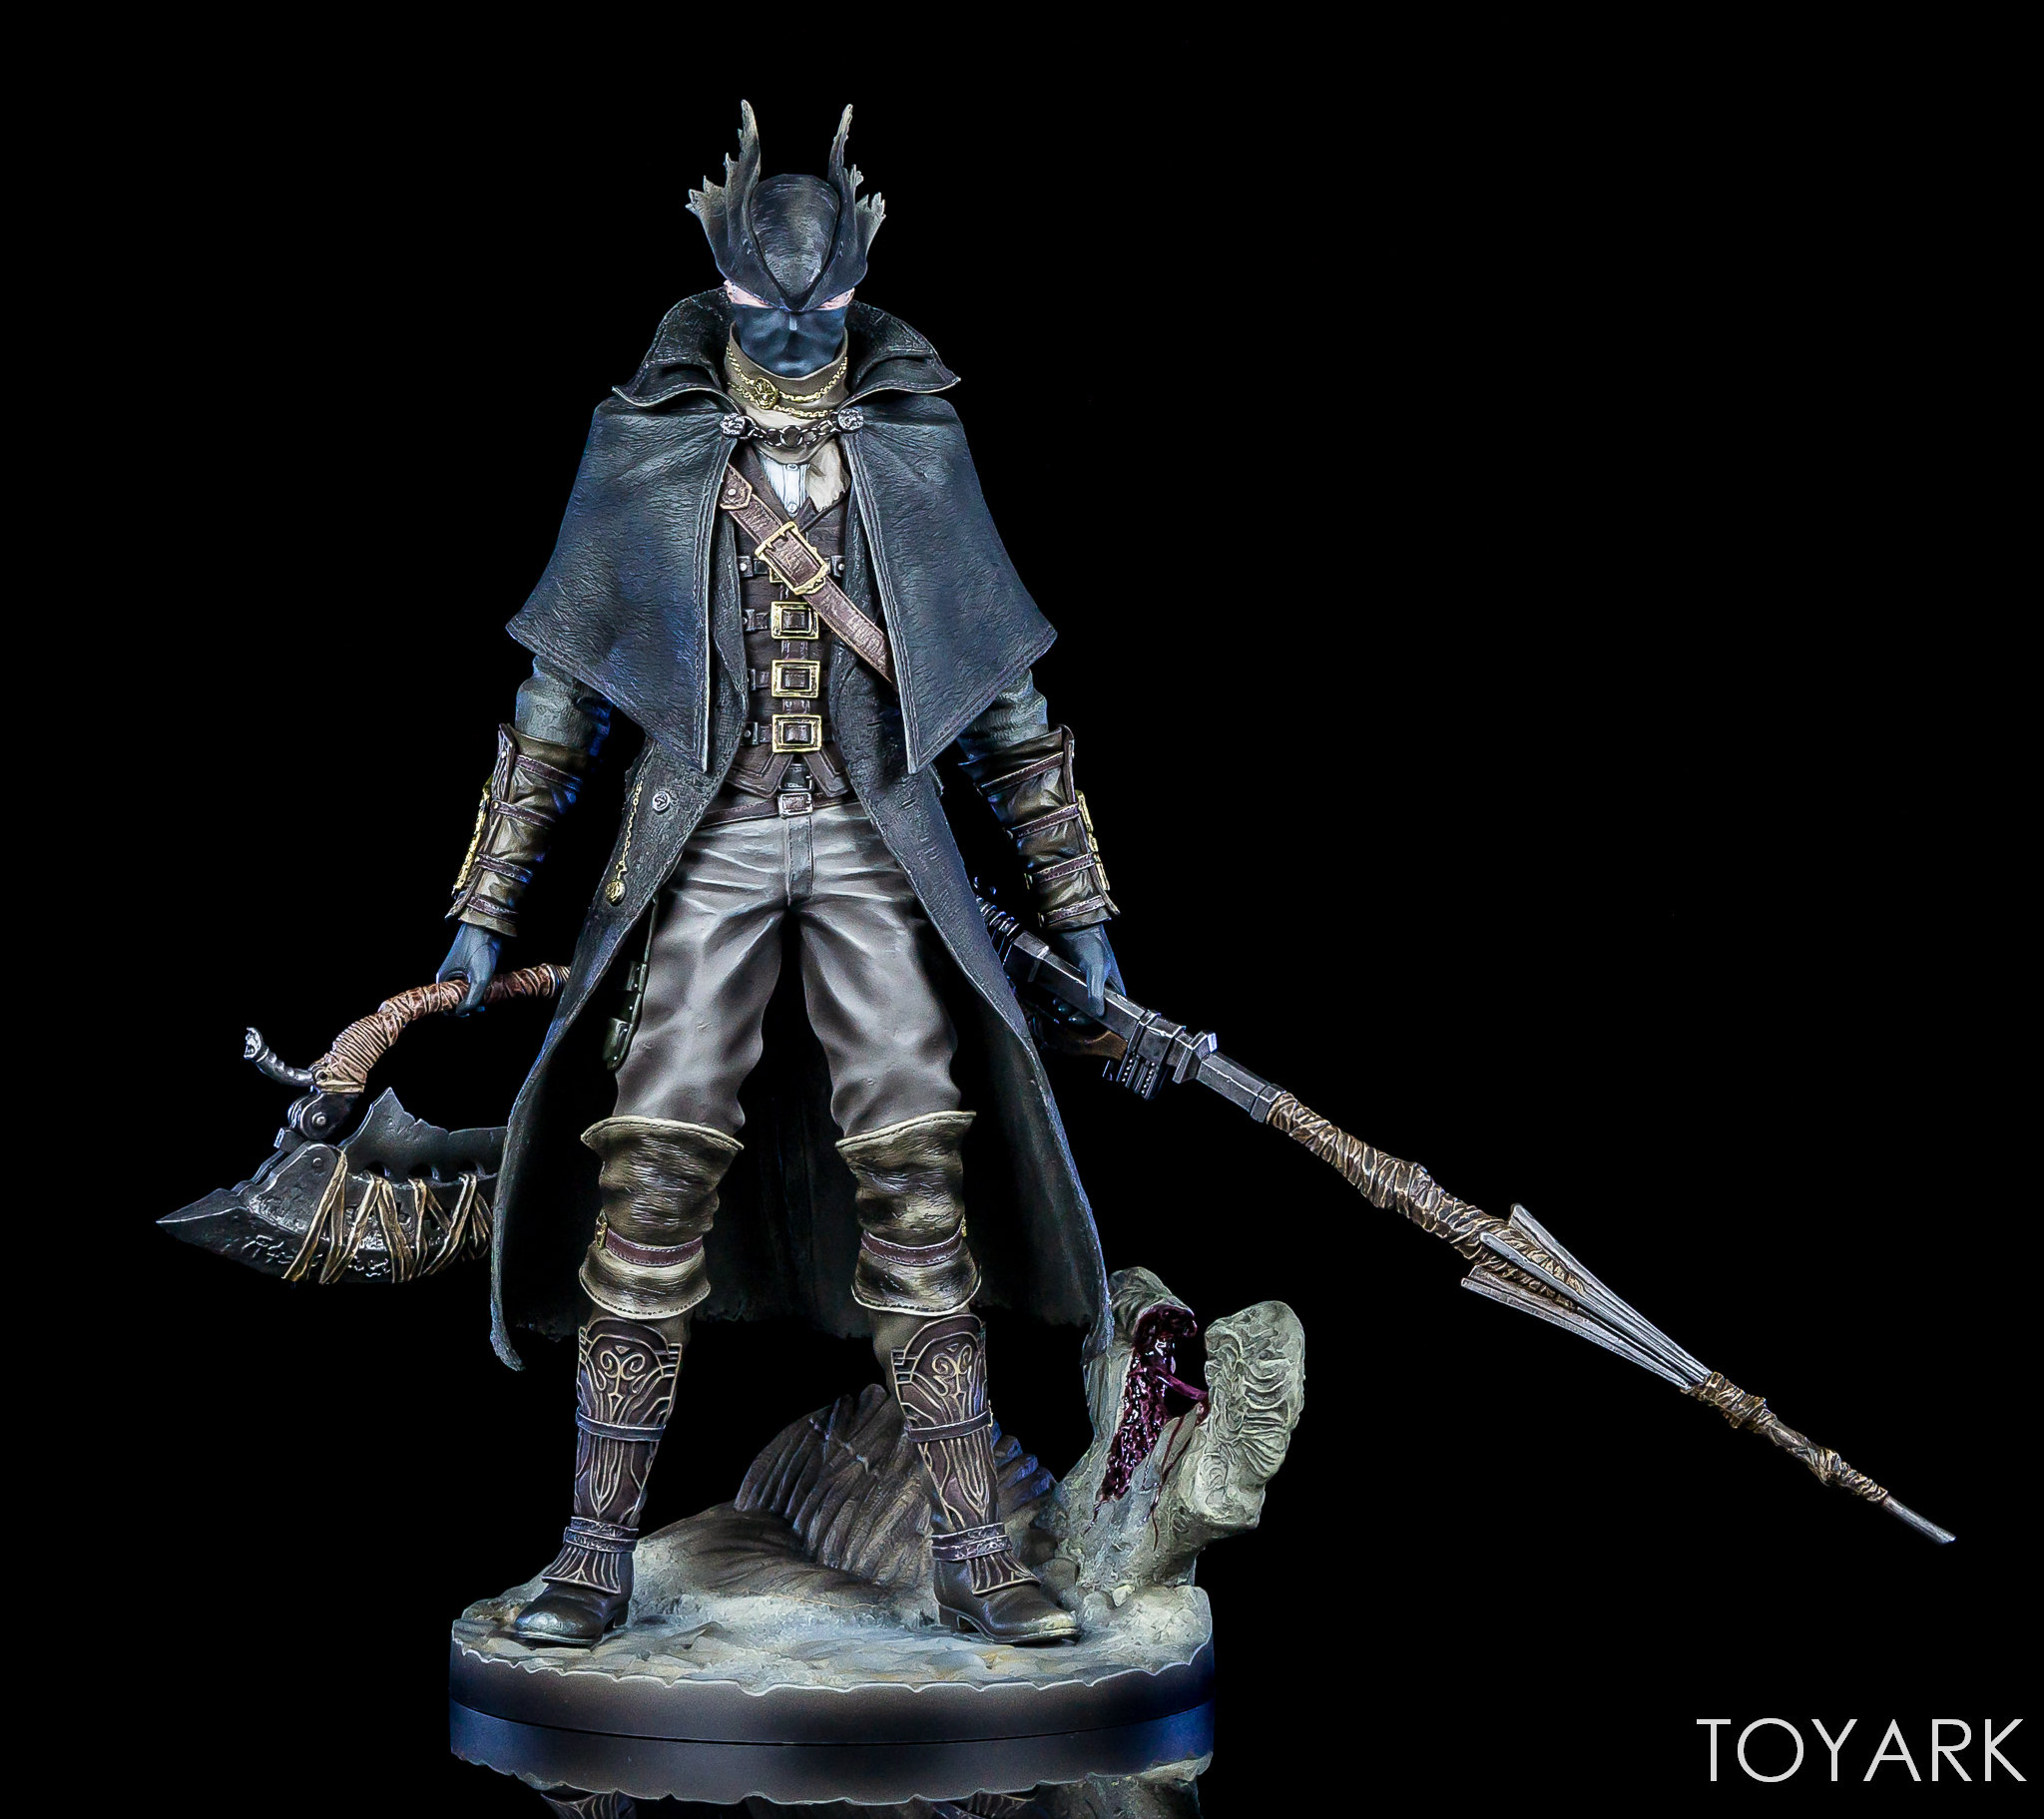 https://news.toyark.com/wp-content/uploads/sites/4/2018/07/Gecco-Bloodborne-Old-Hunter-008.jpg